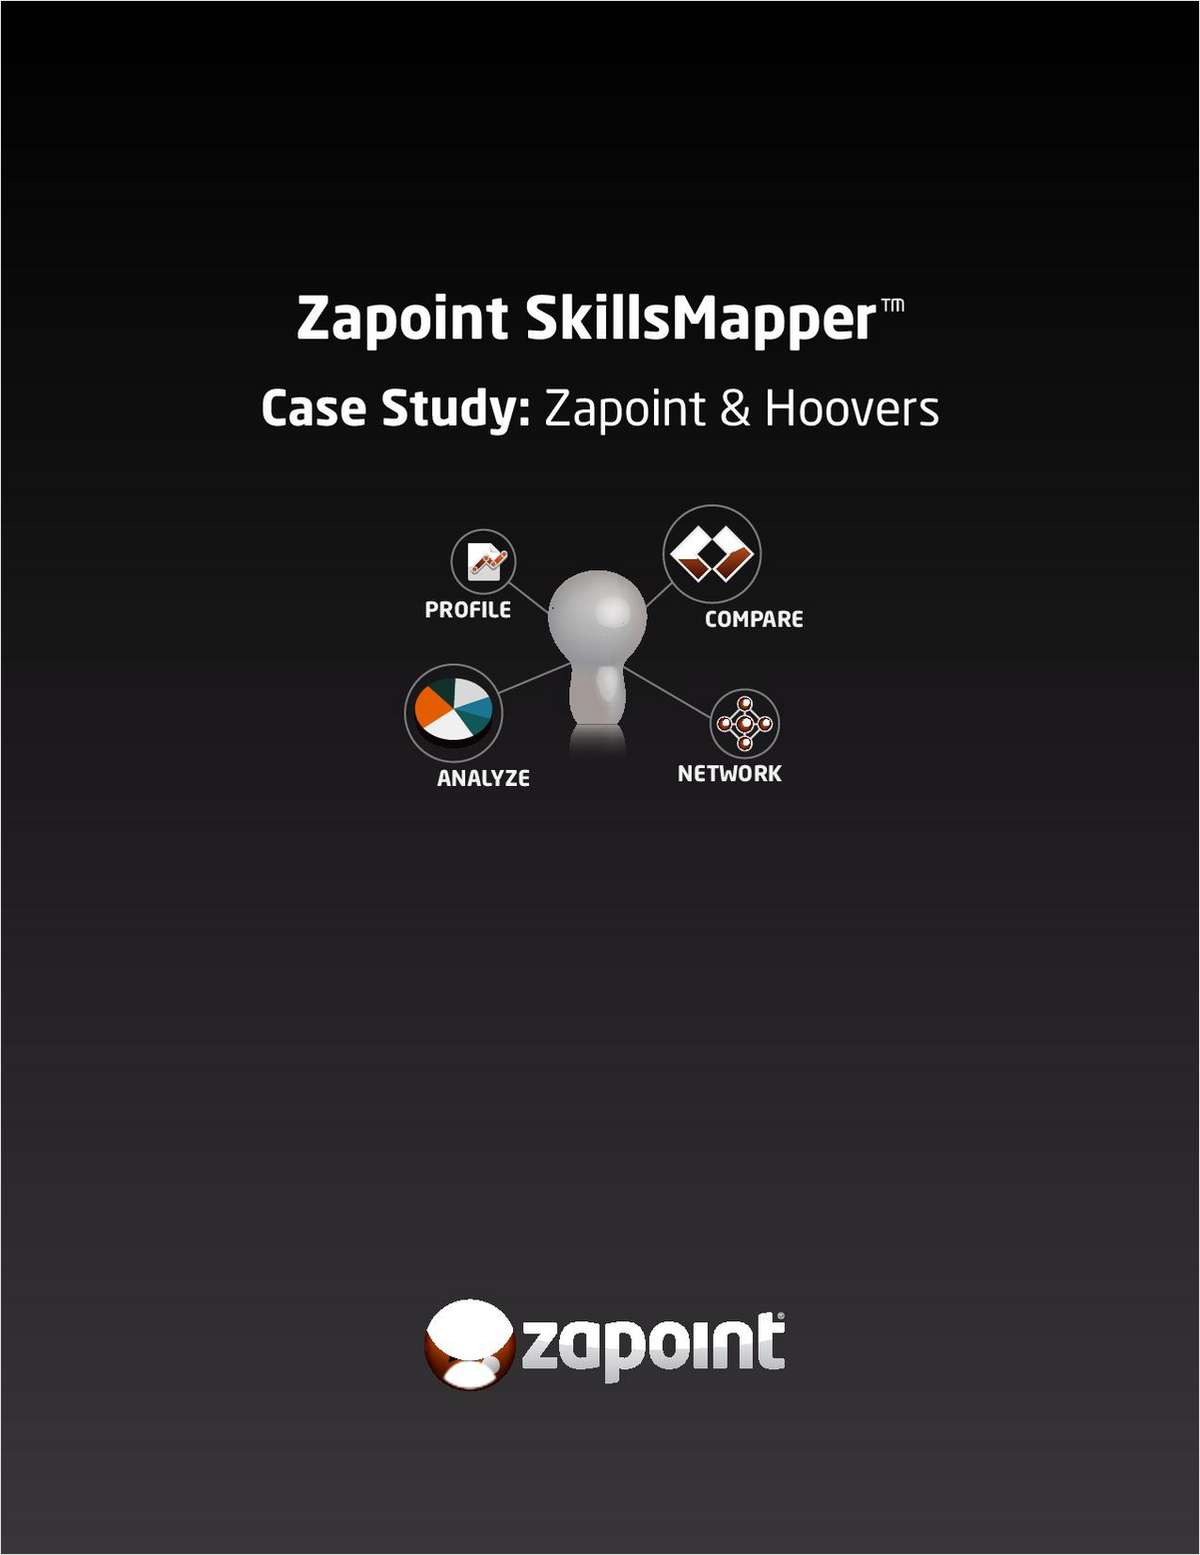 Case Study: Hoovers, Inc. Creates a Successful Talent Management Process